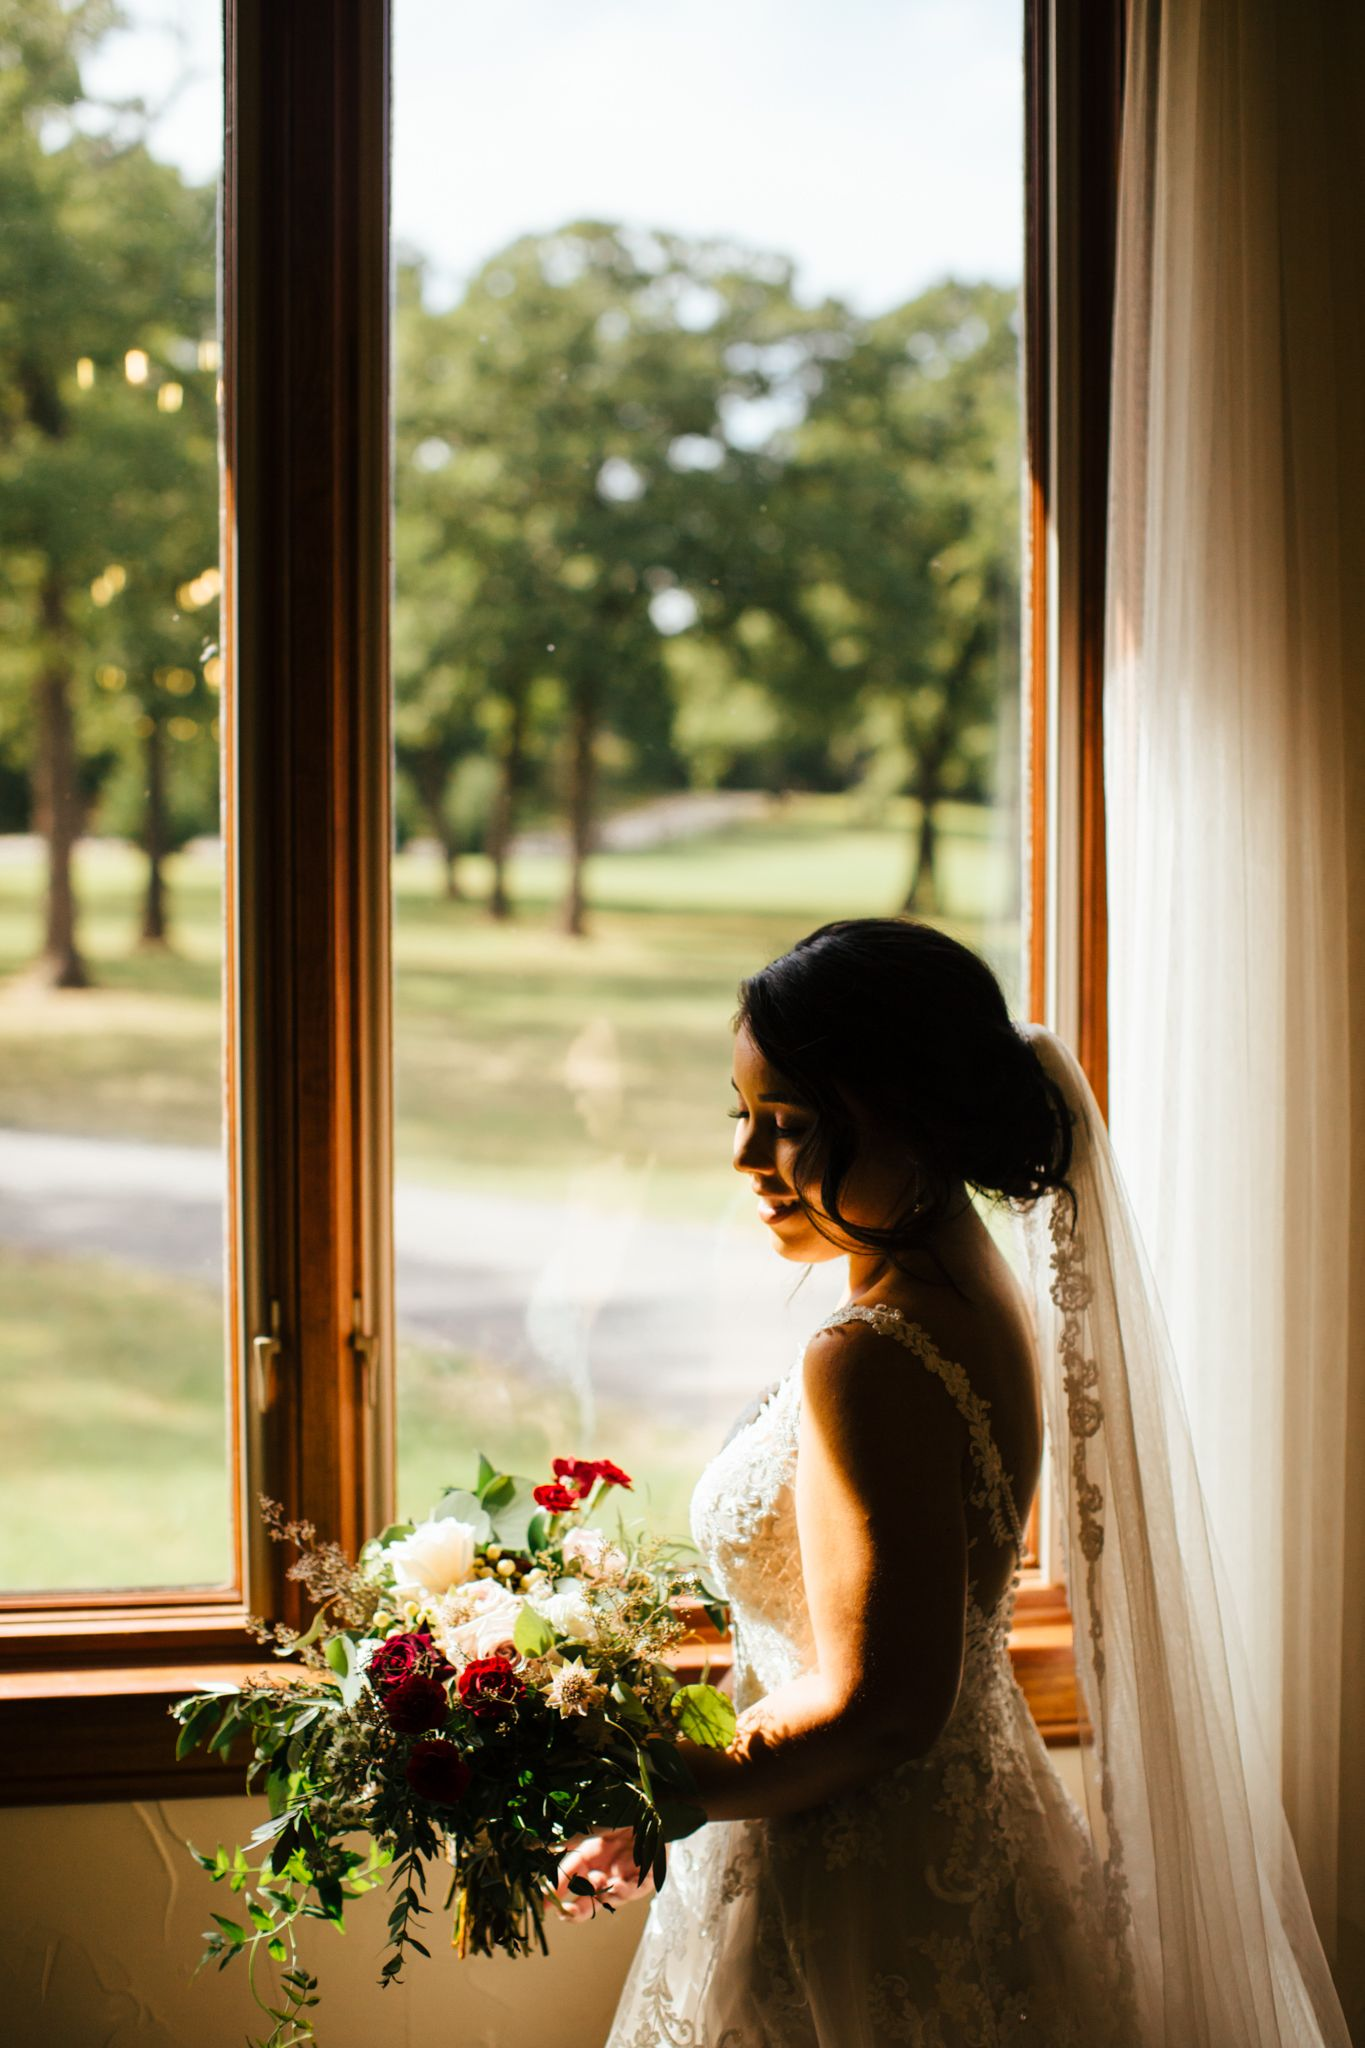 July wedding at The Grove in Aubrey, Texas! Photos by